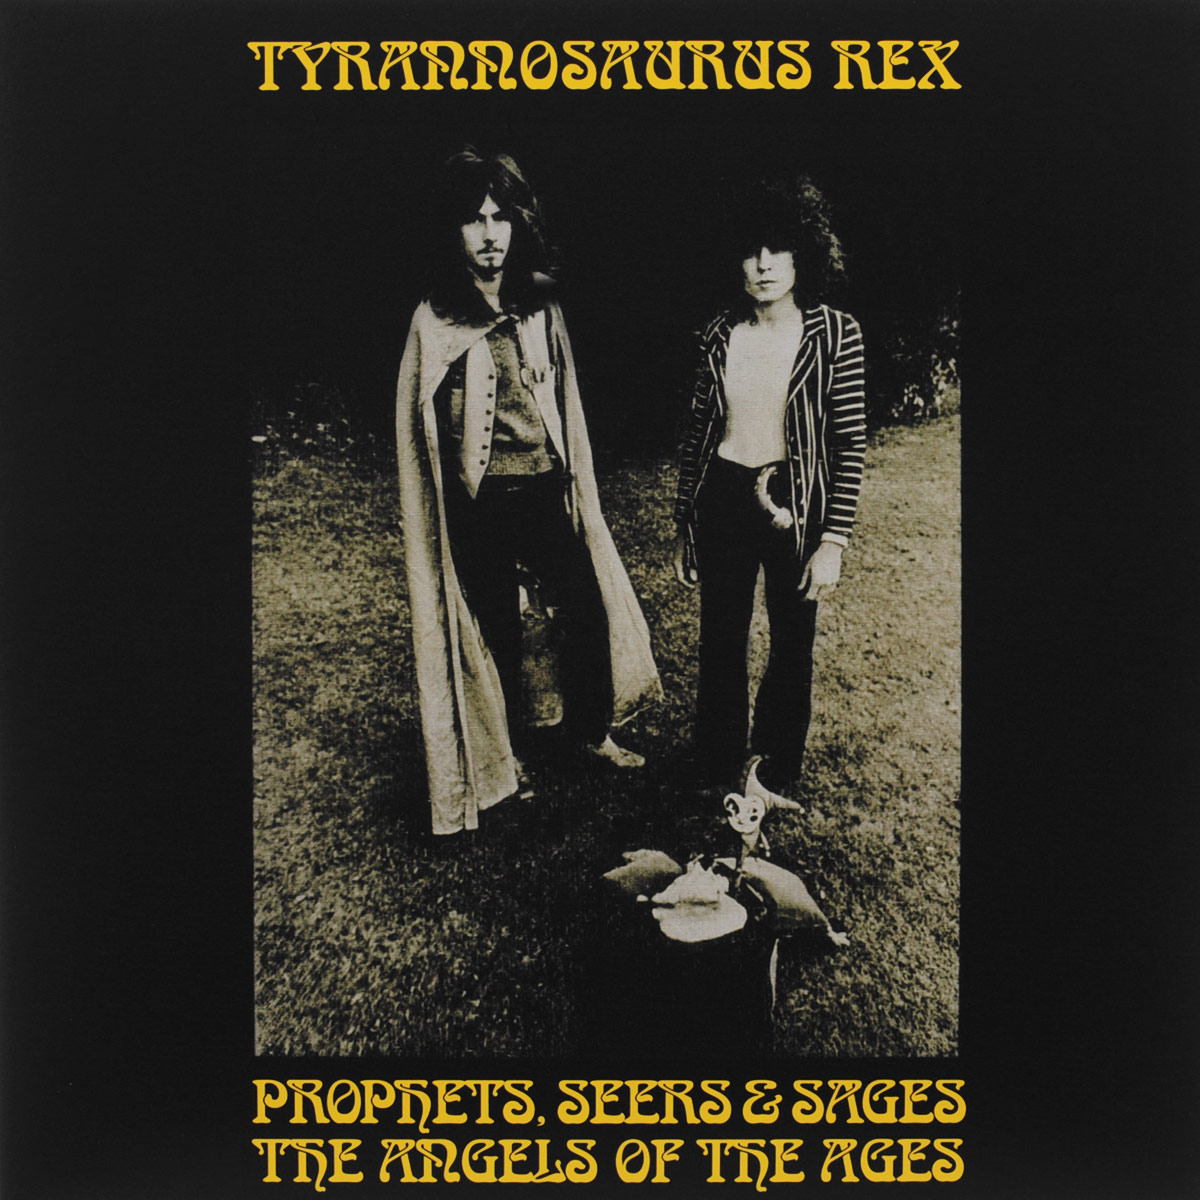 Tyrannosaurus Rex Tyrannosaurus Rex. Prophets, Seers & Sages. The Angels Of The Ages (2 LP) лего кубики lego 75918 tyrannosaurus rex